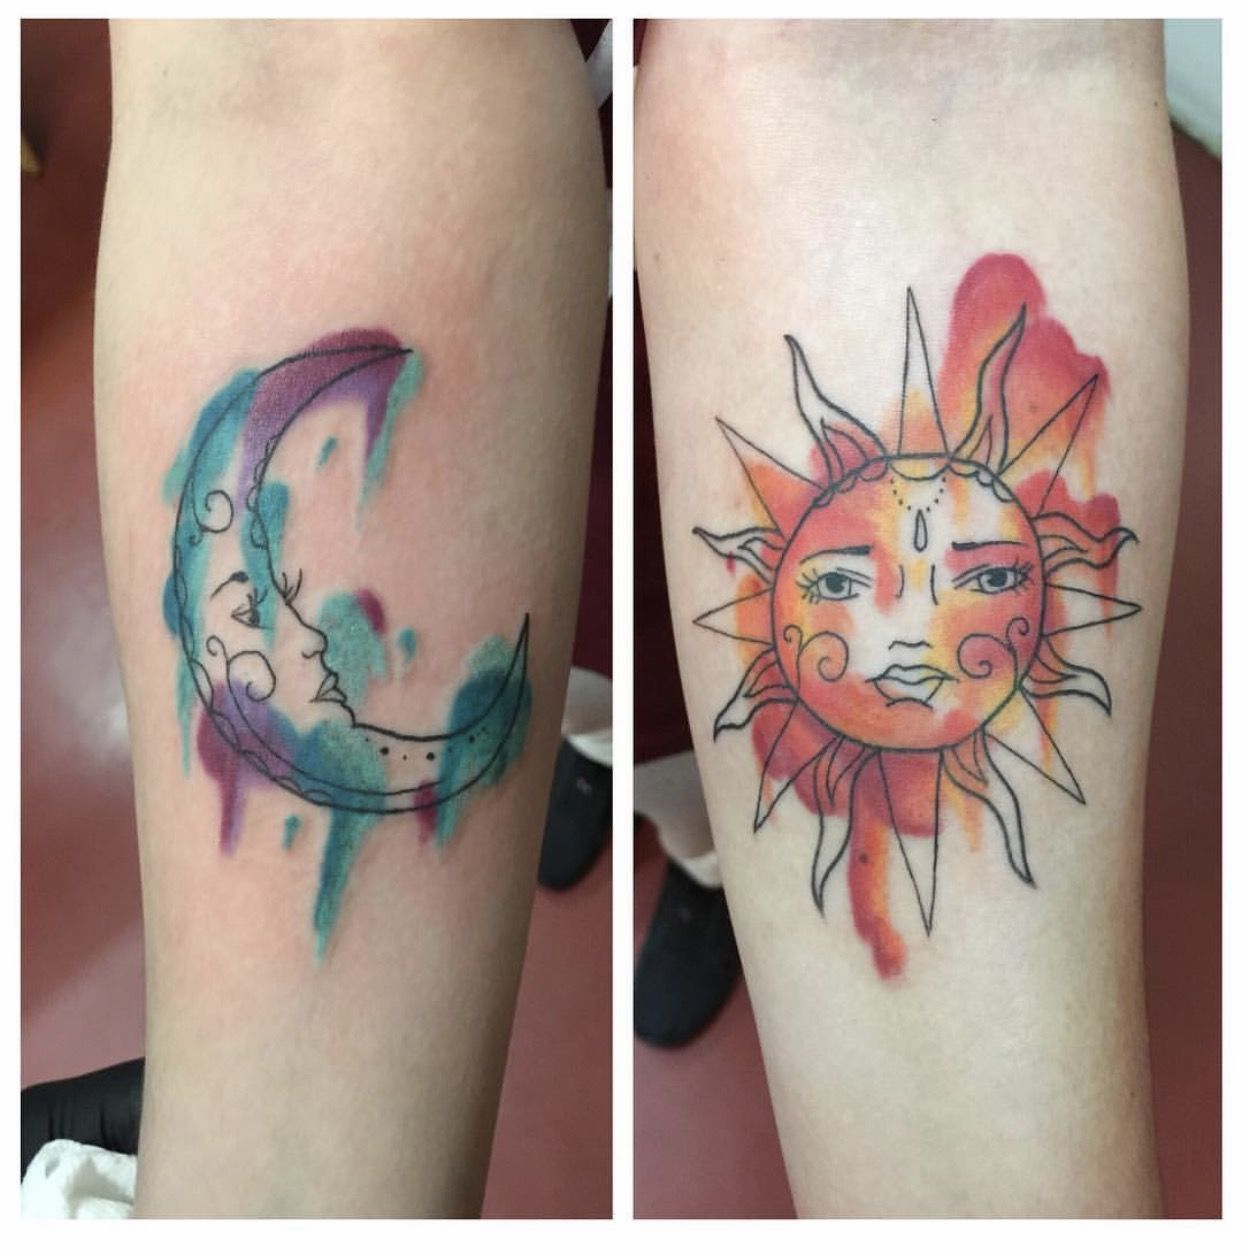 Tattoos sun moon matching watercolor tattoos for Sun and moon matching tattoo